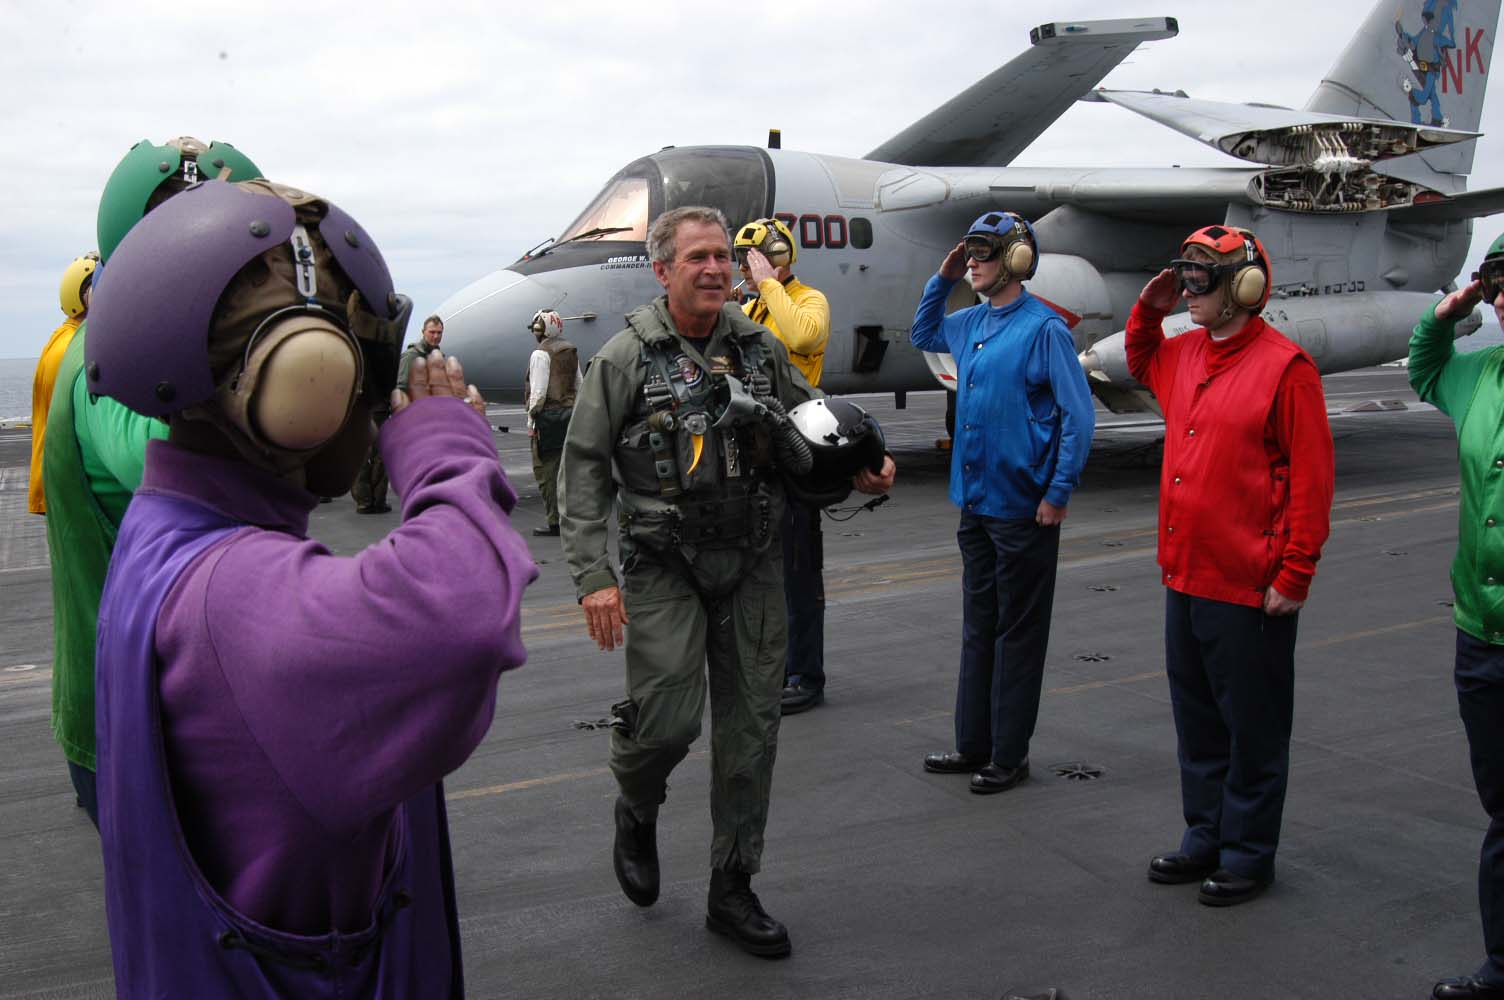 http://russian7.ru/wp-content/uploads/2014/03/George_W_Bush_on_the_deck_of_the_USS_Abraham_Lincoln.jpg